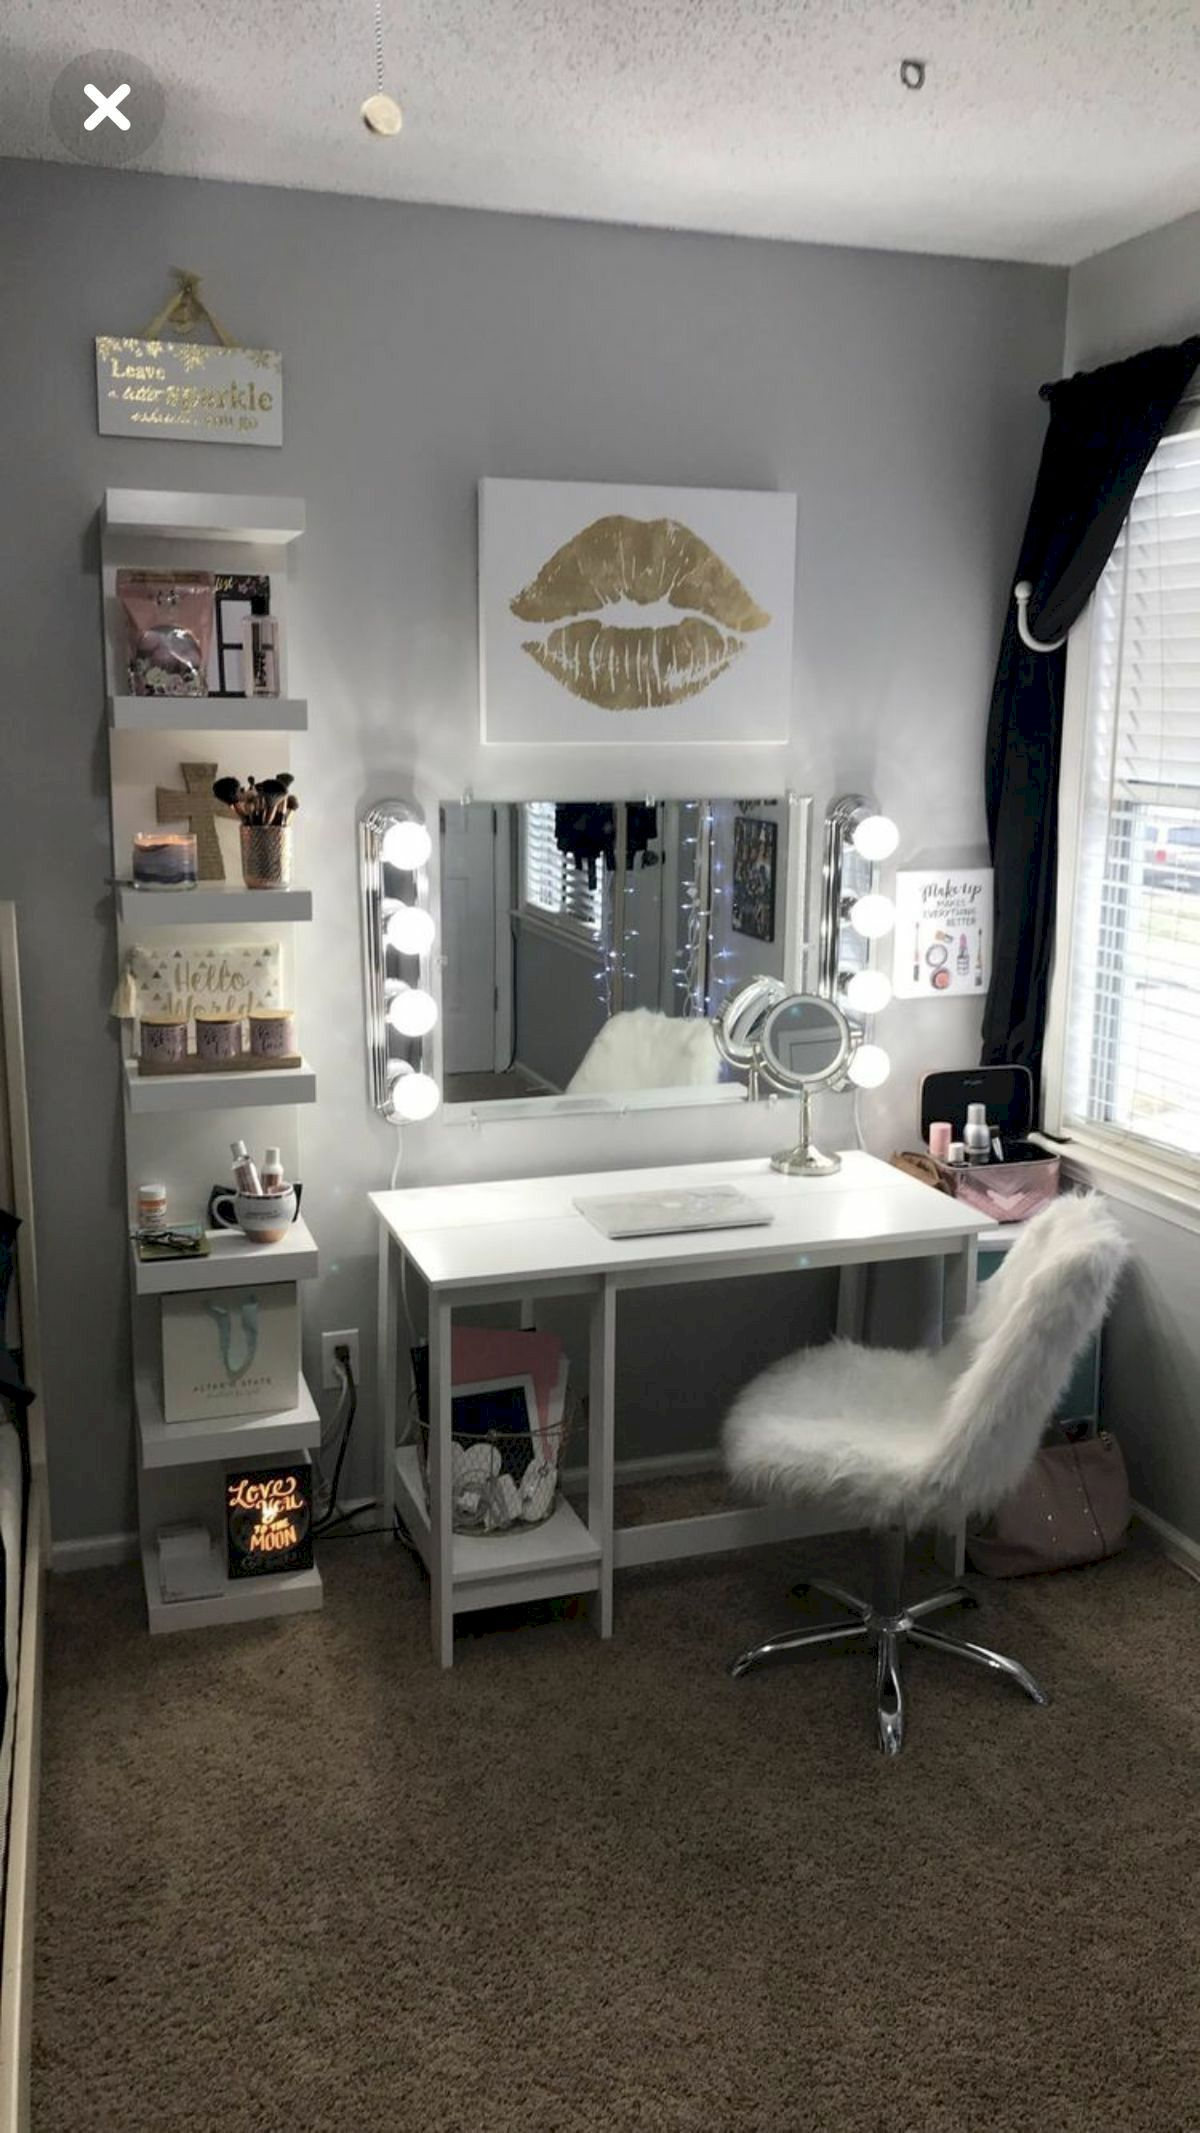 40 Beautiful Make Up Room Ideas in Your Bedroom (33)